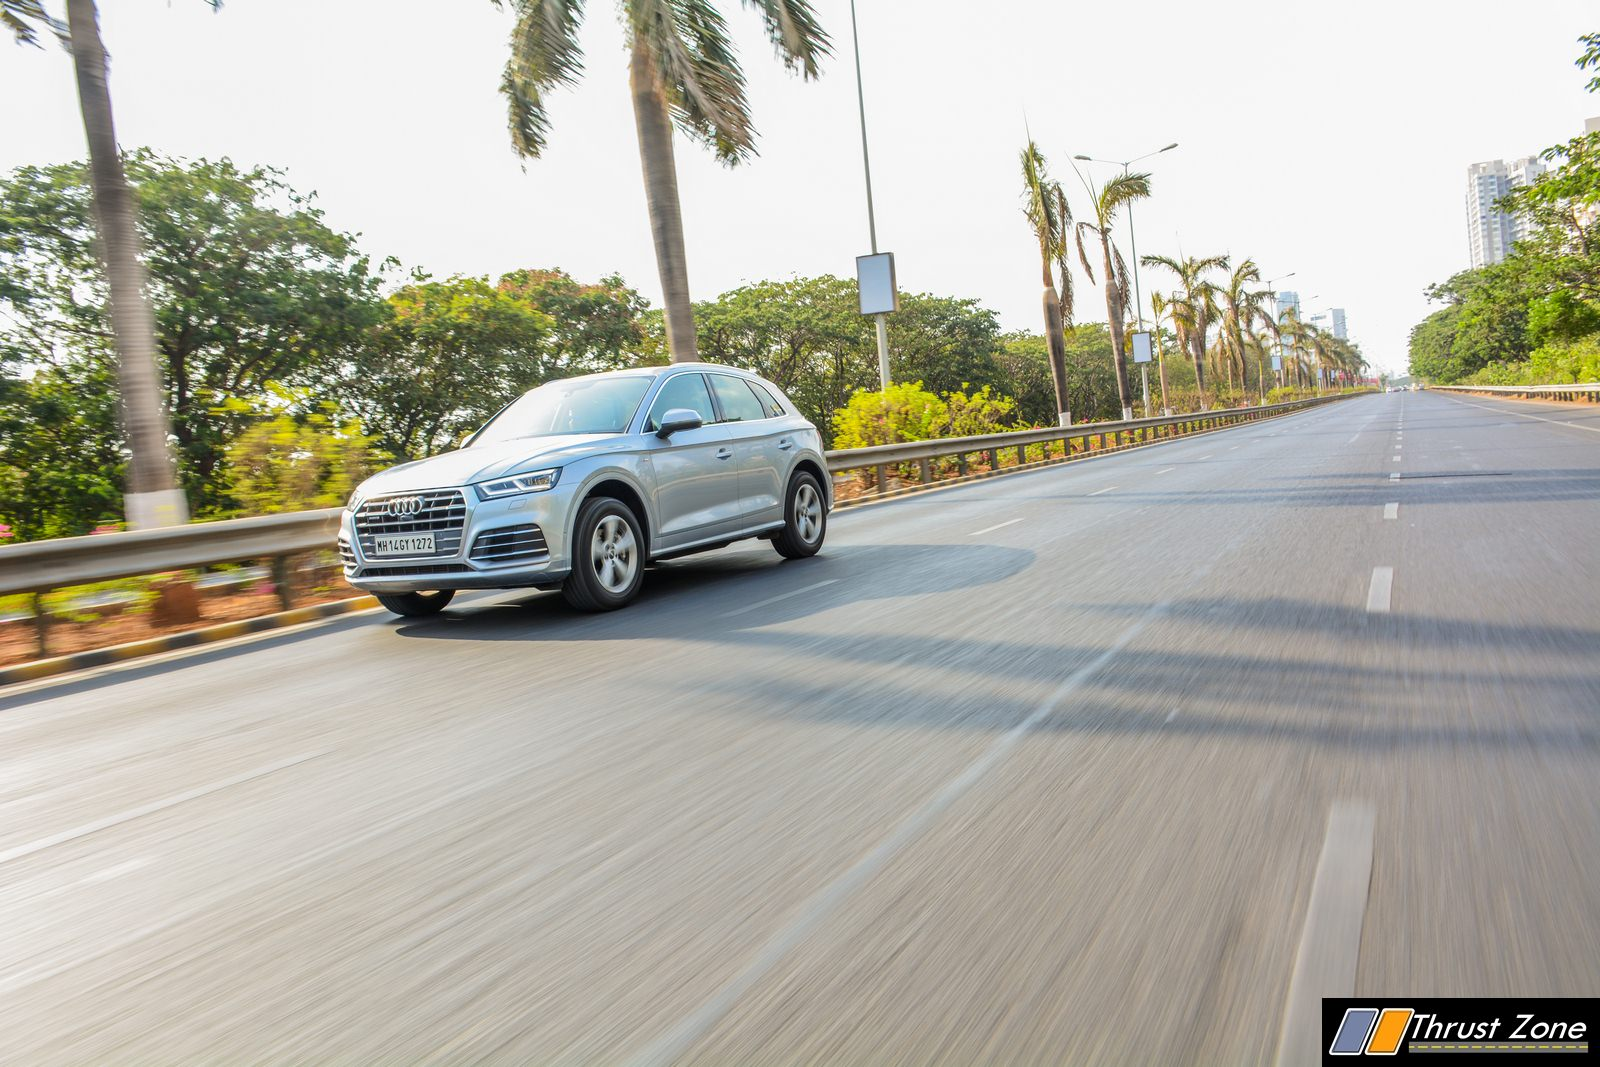 https://www.thrustzone.com/wp-content/uploads/2019/06/2019-Audi-Q5-Petrol-India-Review-2.jpg